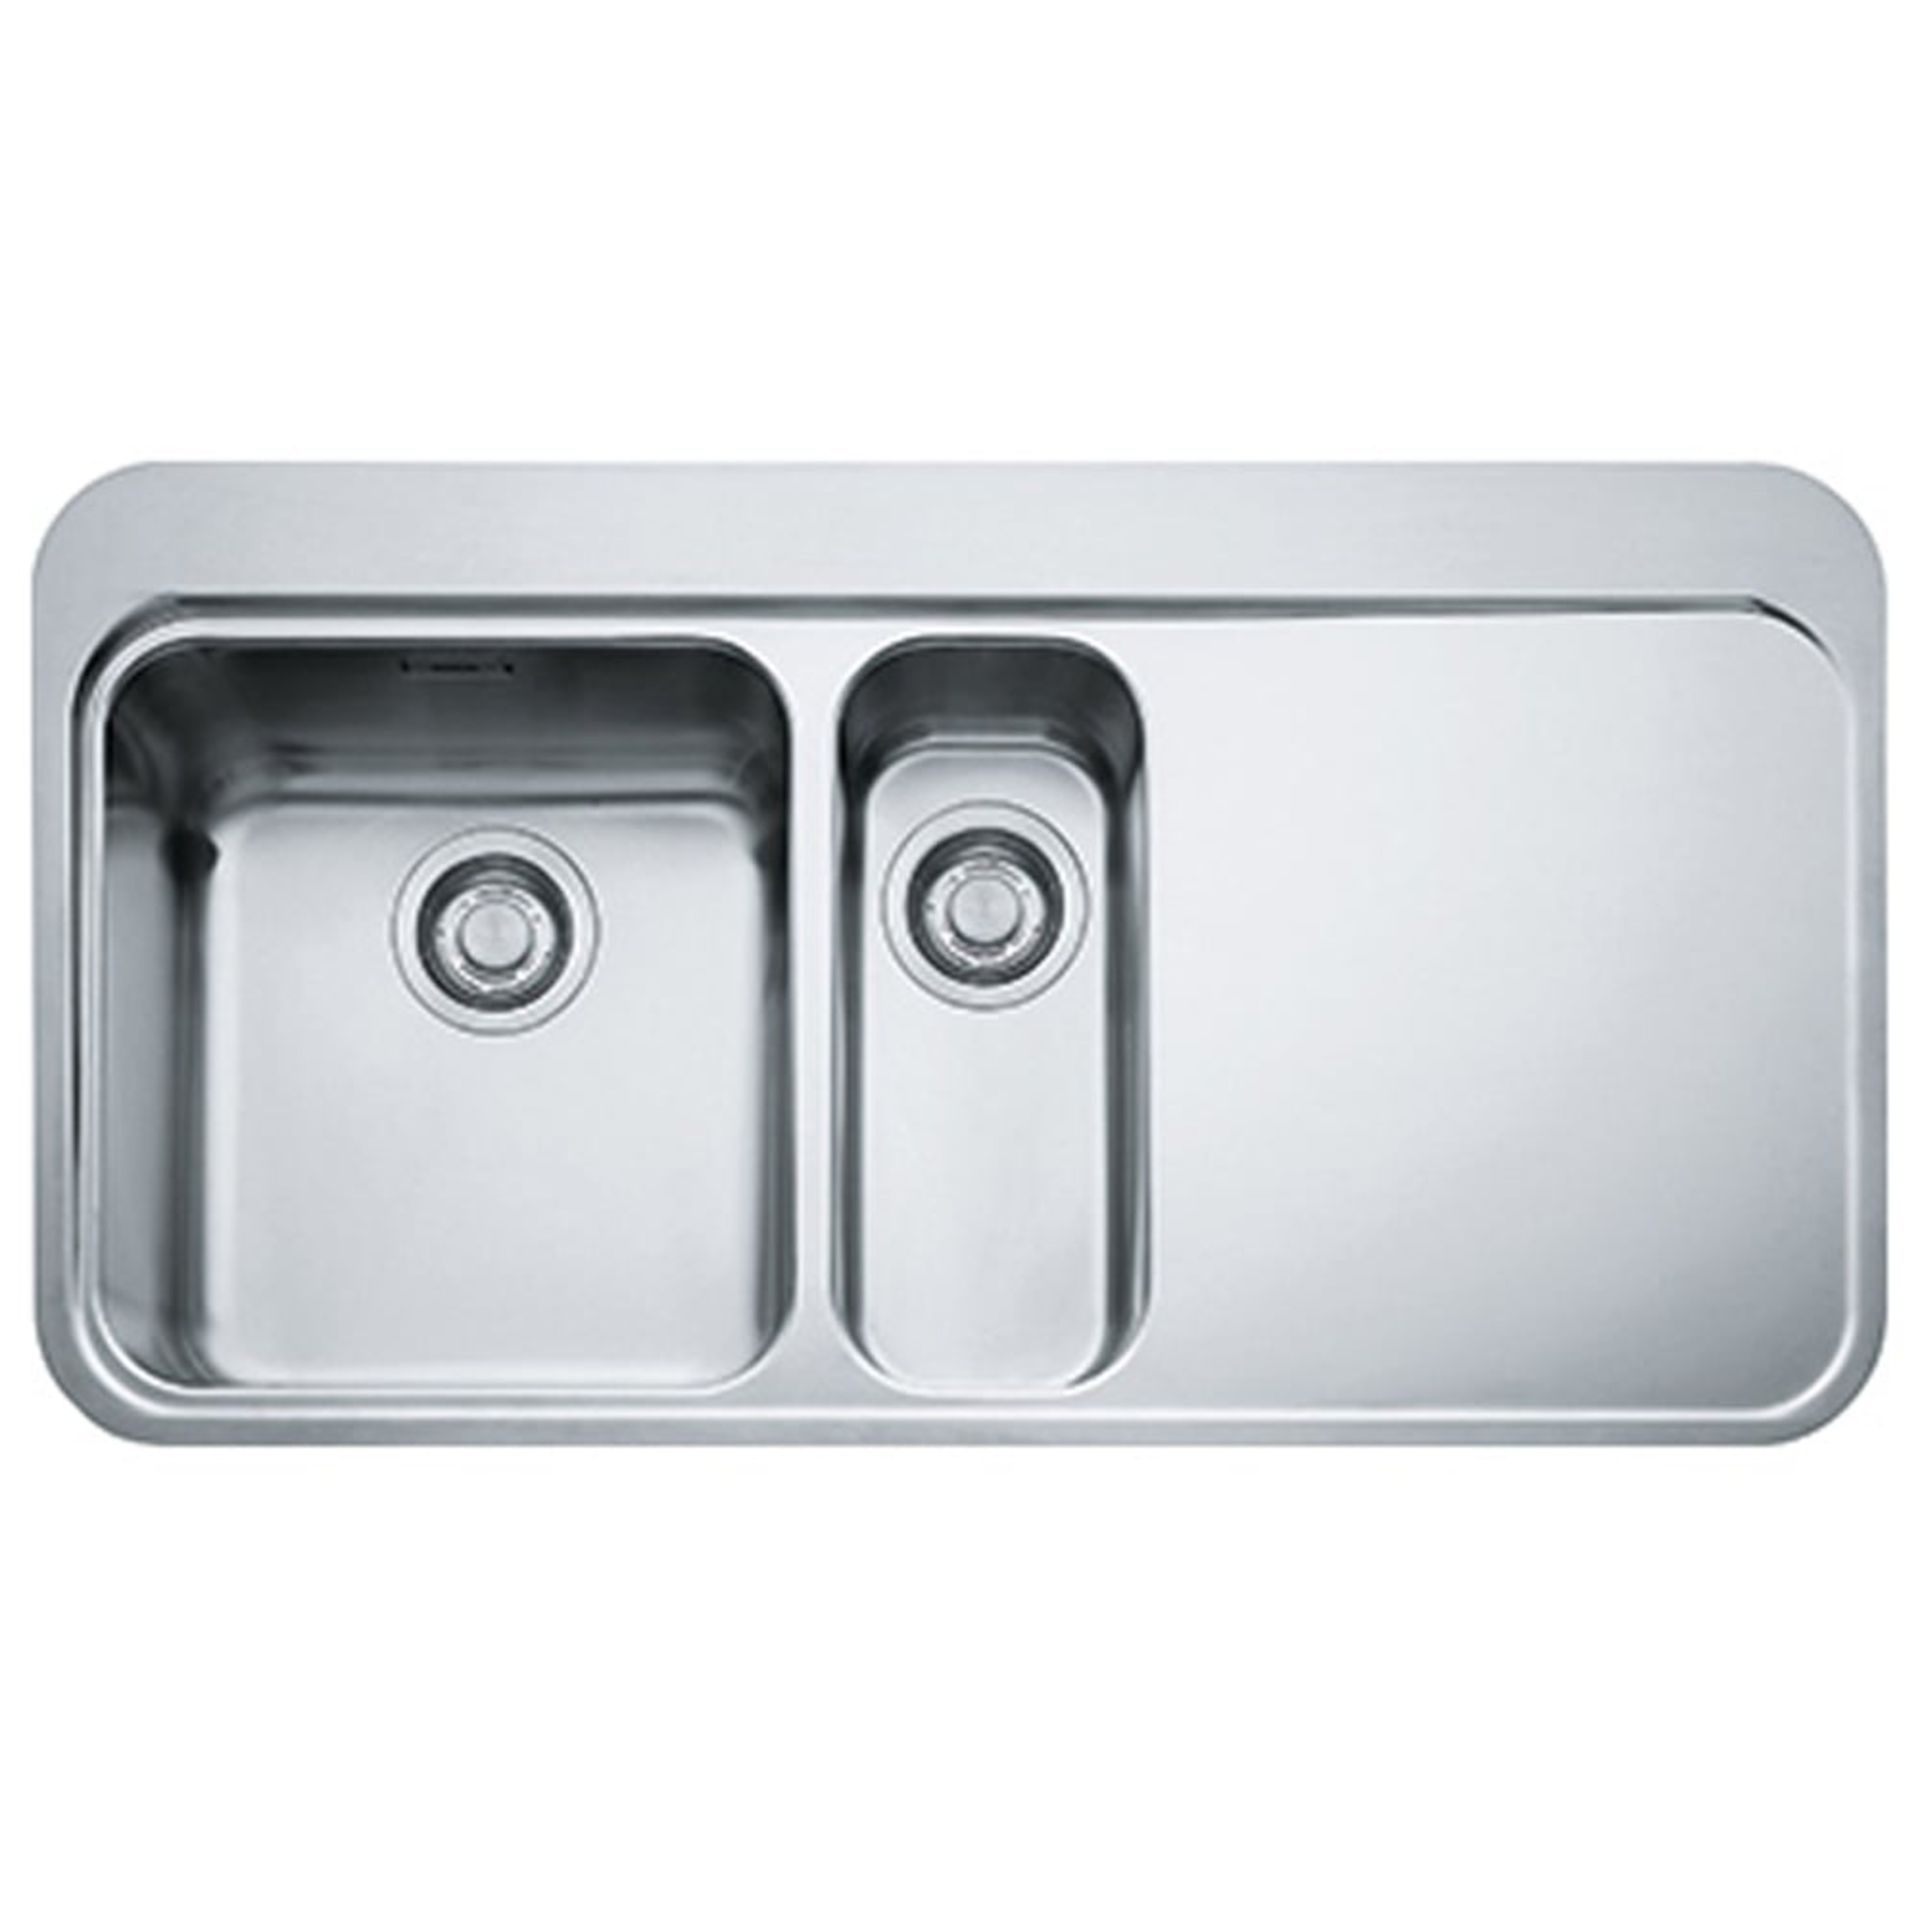 Boxed Brand New Factory Sealed Franke Sink- Model- SNX 251 965x510mm, RRP-£450.00